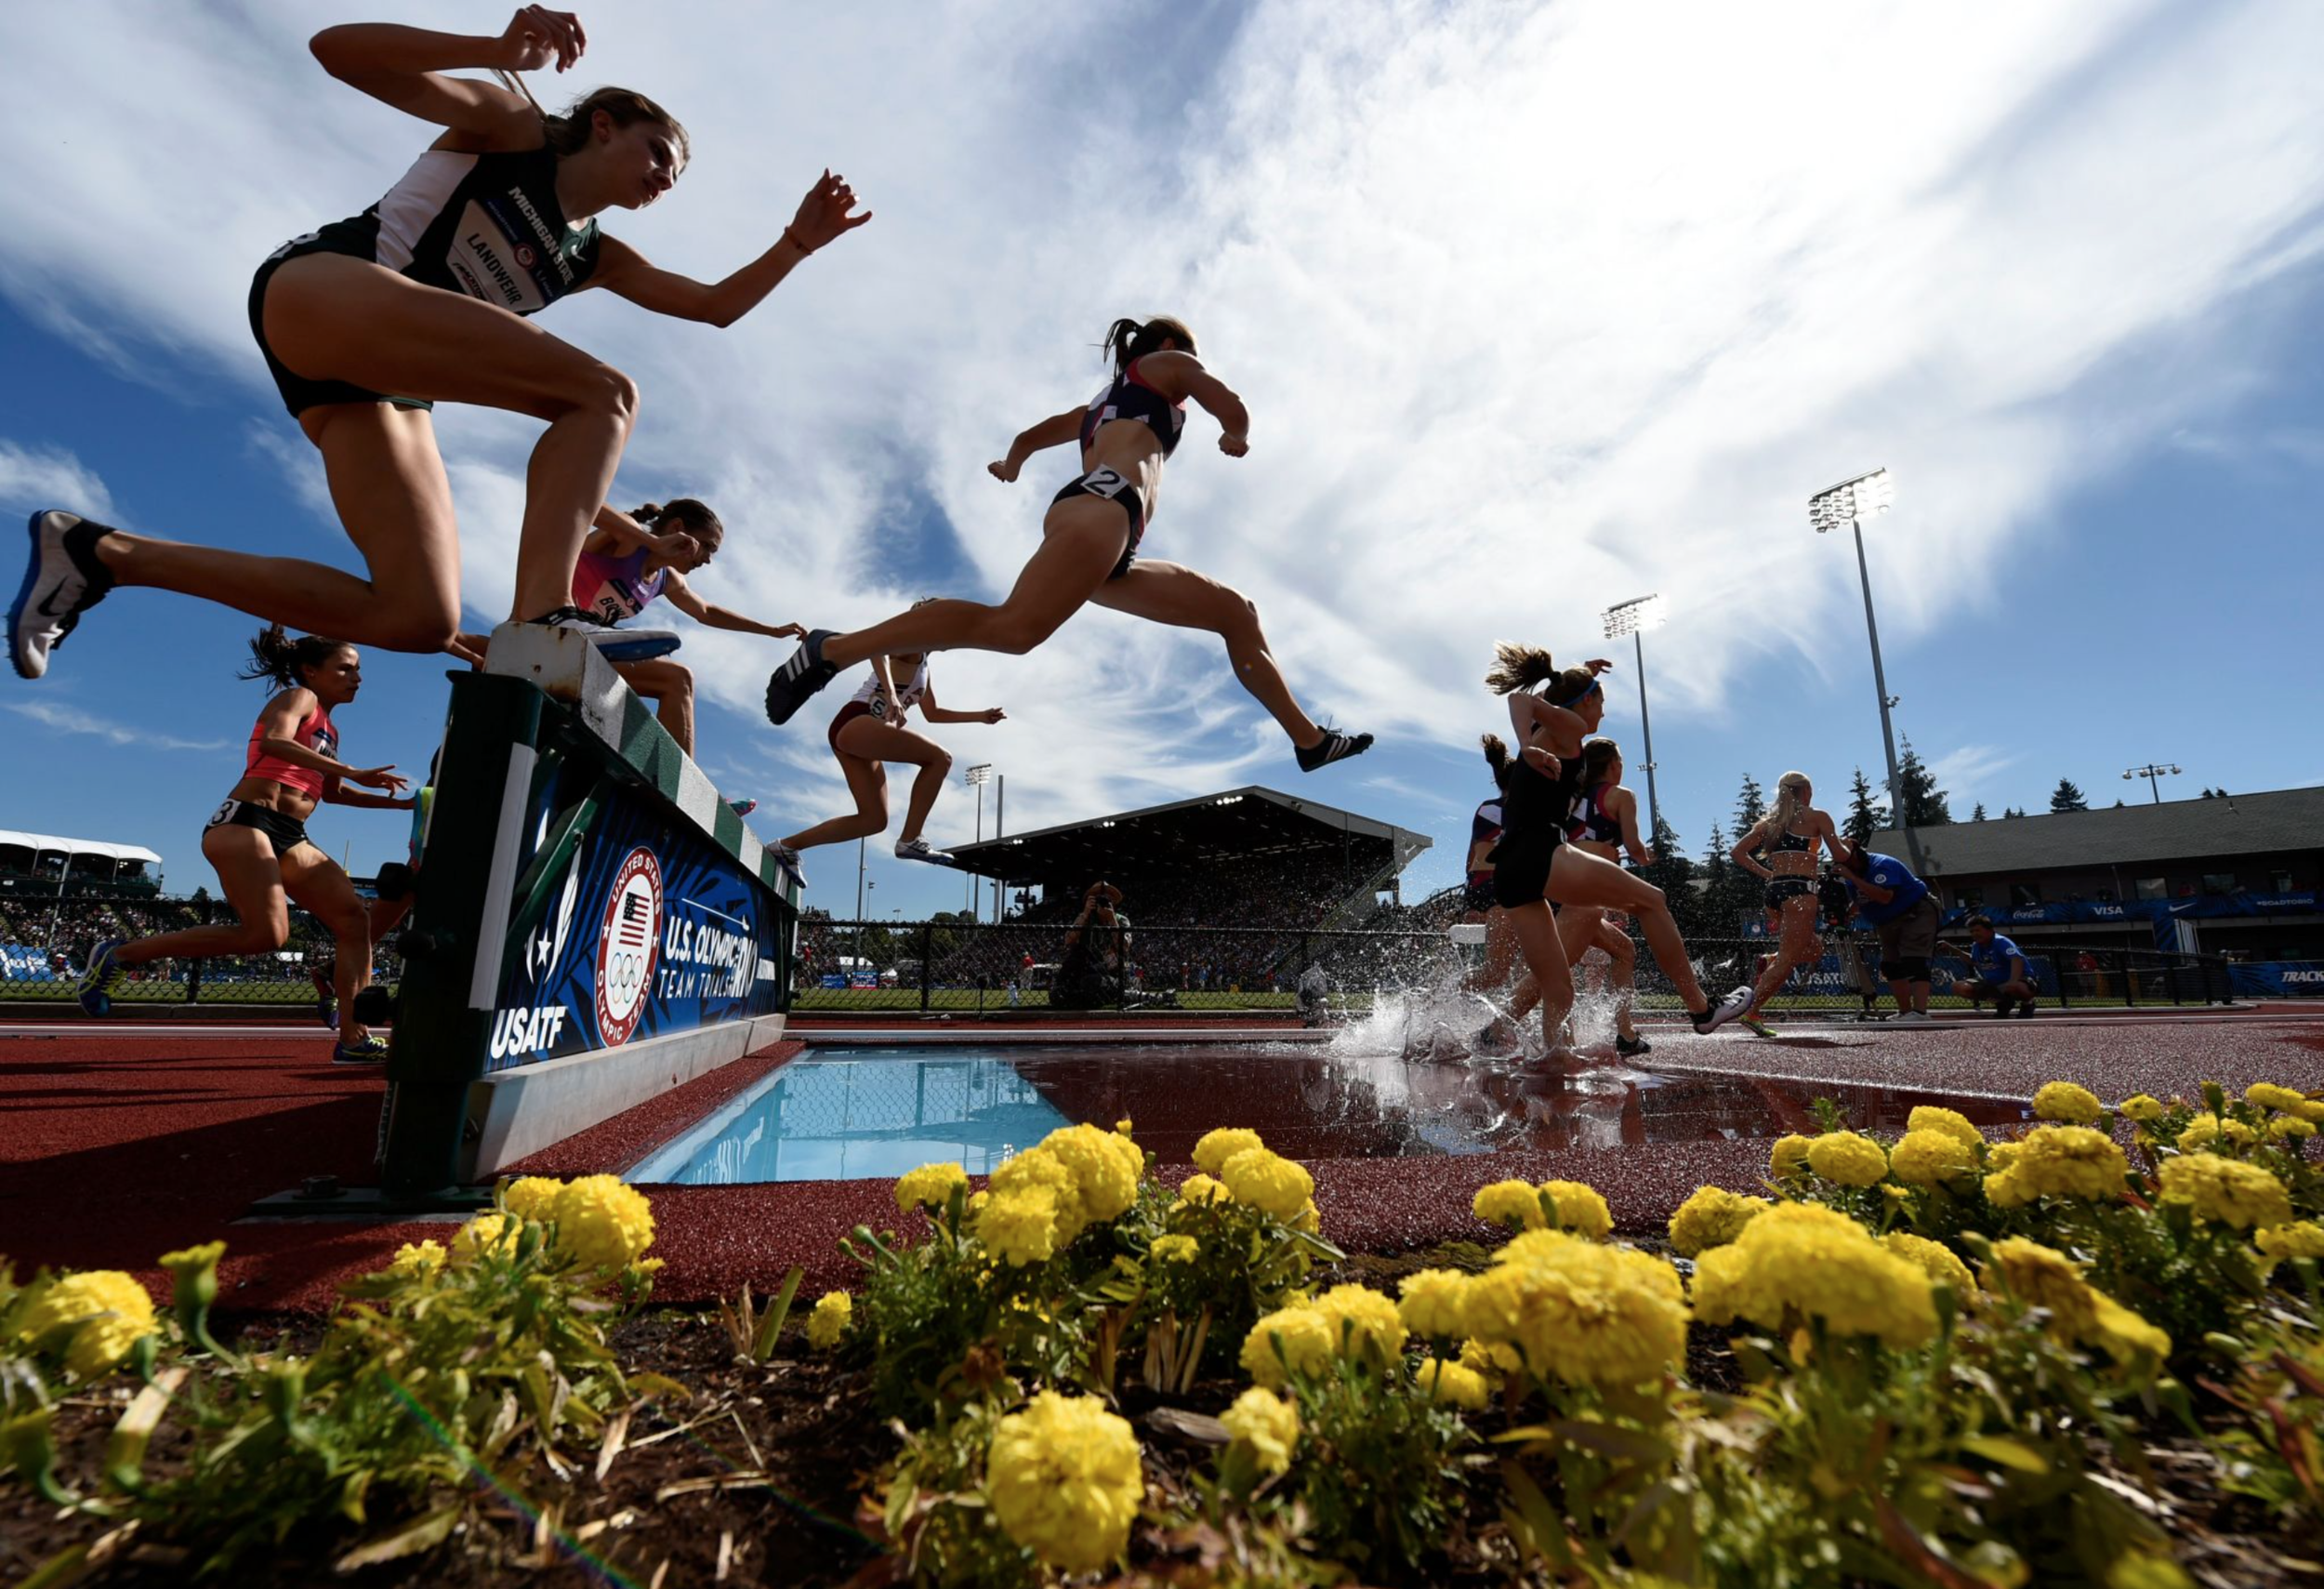 Competitors run in the women's 3,000-meter steeplechase event at trials.